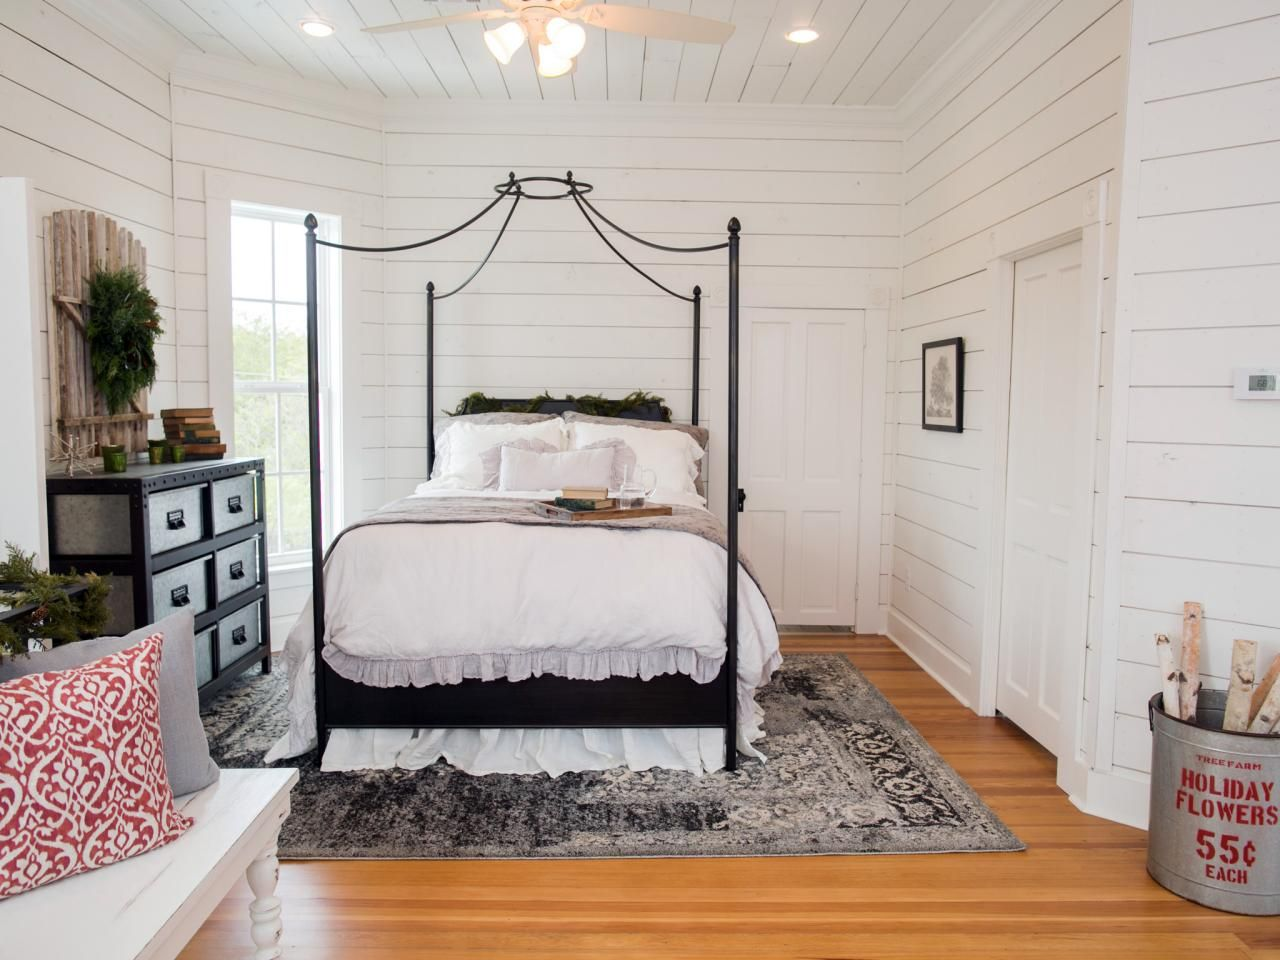 Joanna gaines master bedroom bedding  Find the best of Fixer Upper from HGTV  Decorating General